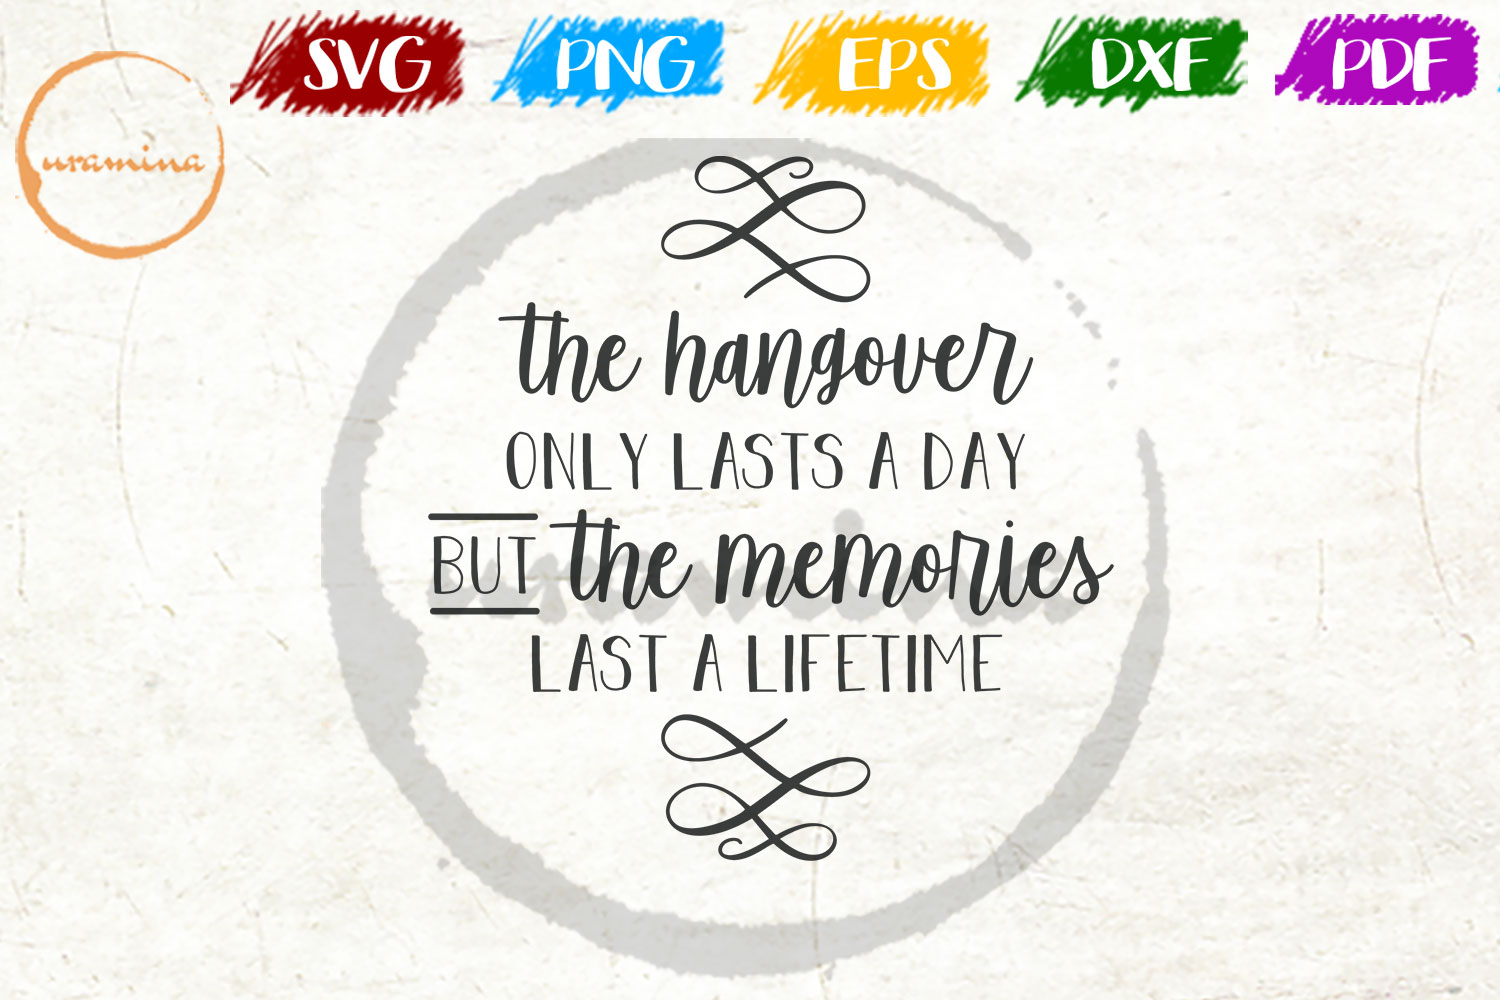 Download Free The Hangover Only Lasts A Day Graphic By Uramina Creative Fabrica for Cricut Explore, Silhouette and other cutting machines.